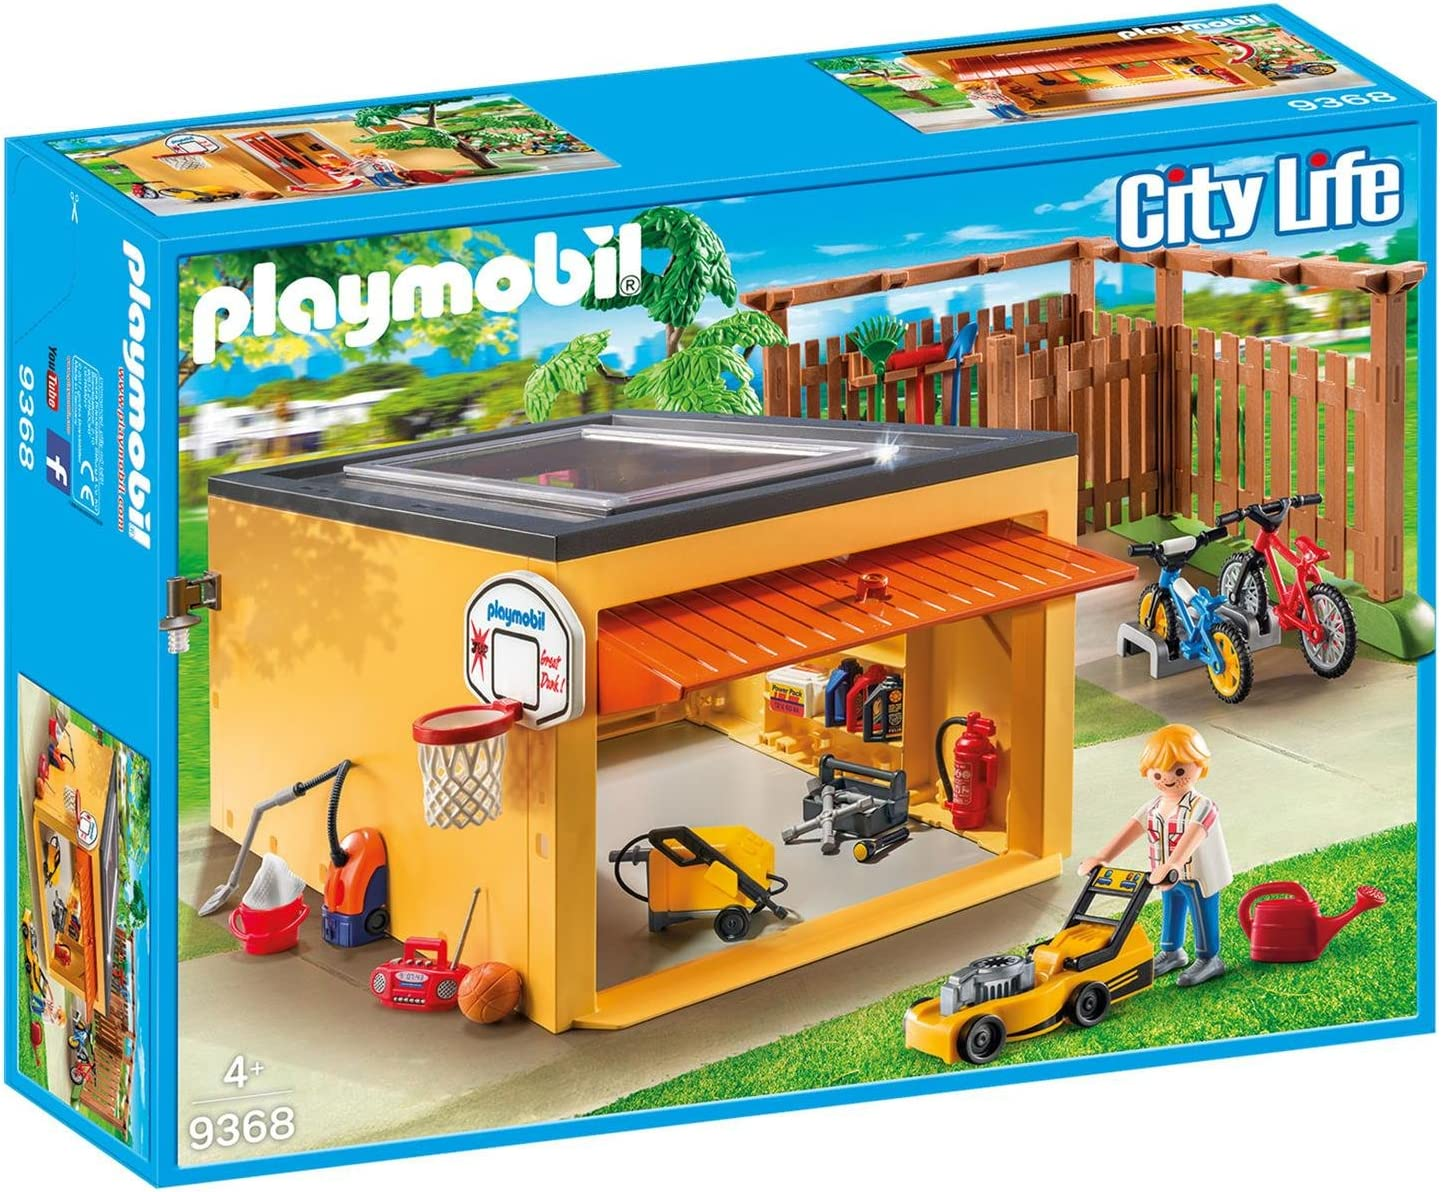 PLAYMOBIL 9368 Garaje con plaza para bicicletas, set exclusivo ...